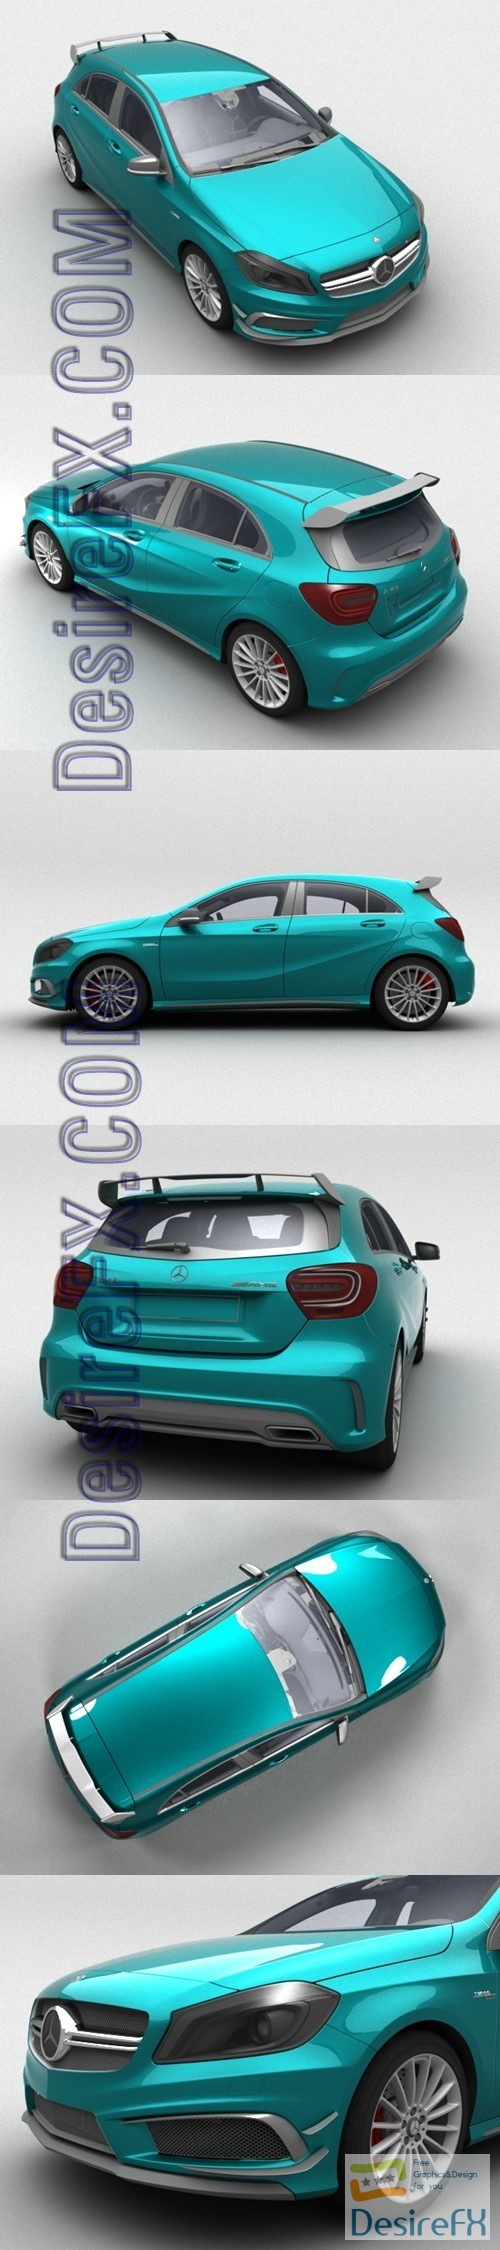 3d-models - Mercedes-Benz A45 AMG 3D Model